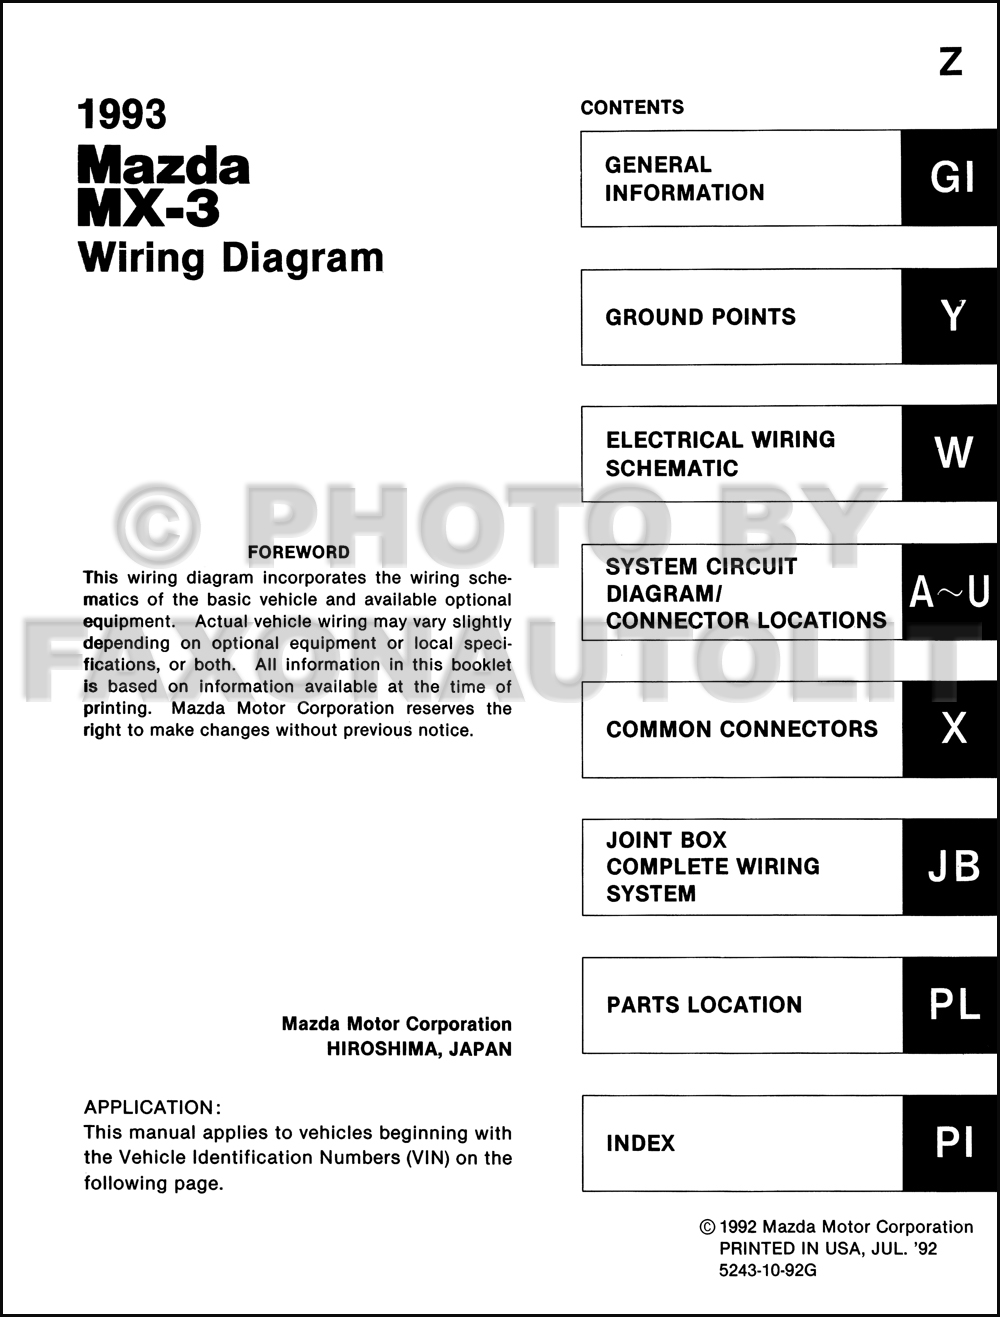 1993 mazda mx 3 wiring diagram manual original click on thumbnail to zoom cheapraybanclubmaster Gallery